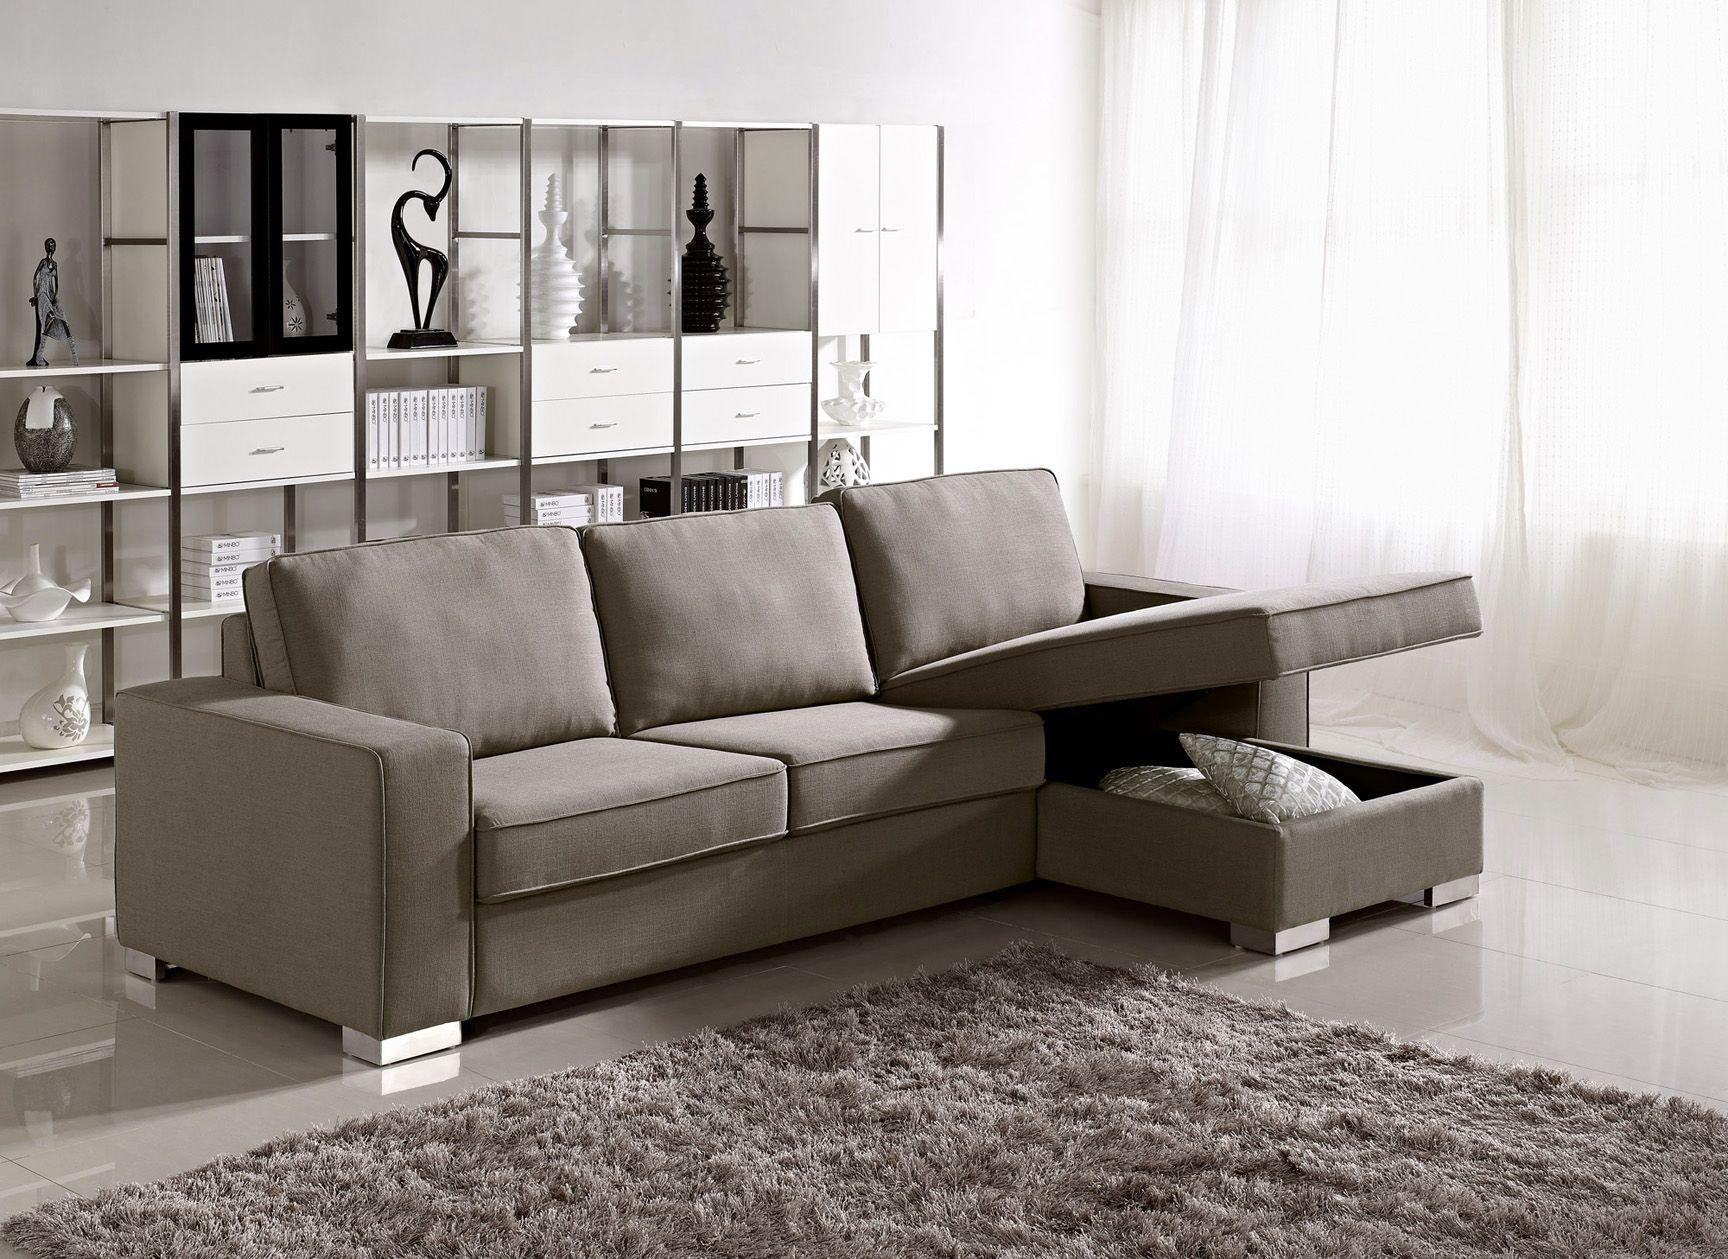 Sectional Sofas Portland Oregon – Leather Sectional Sofa With Regard To Sectional Sofas Portland (Image 9 of 20)